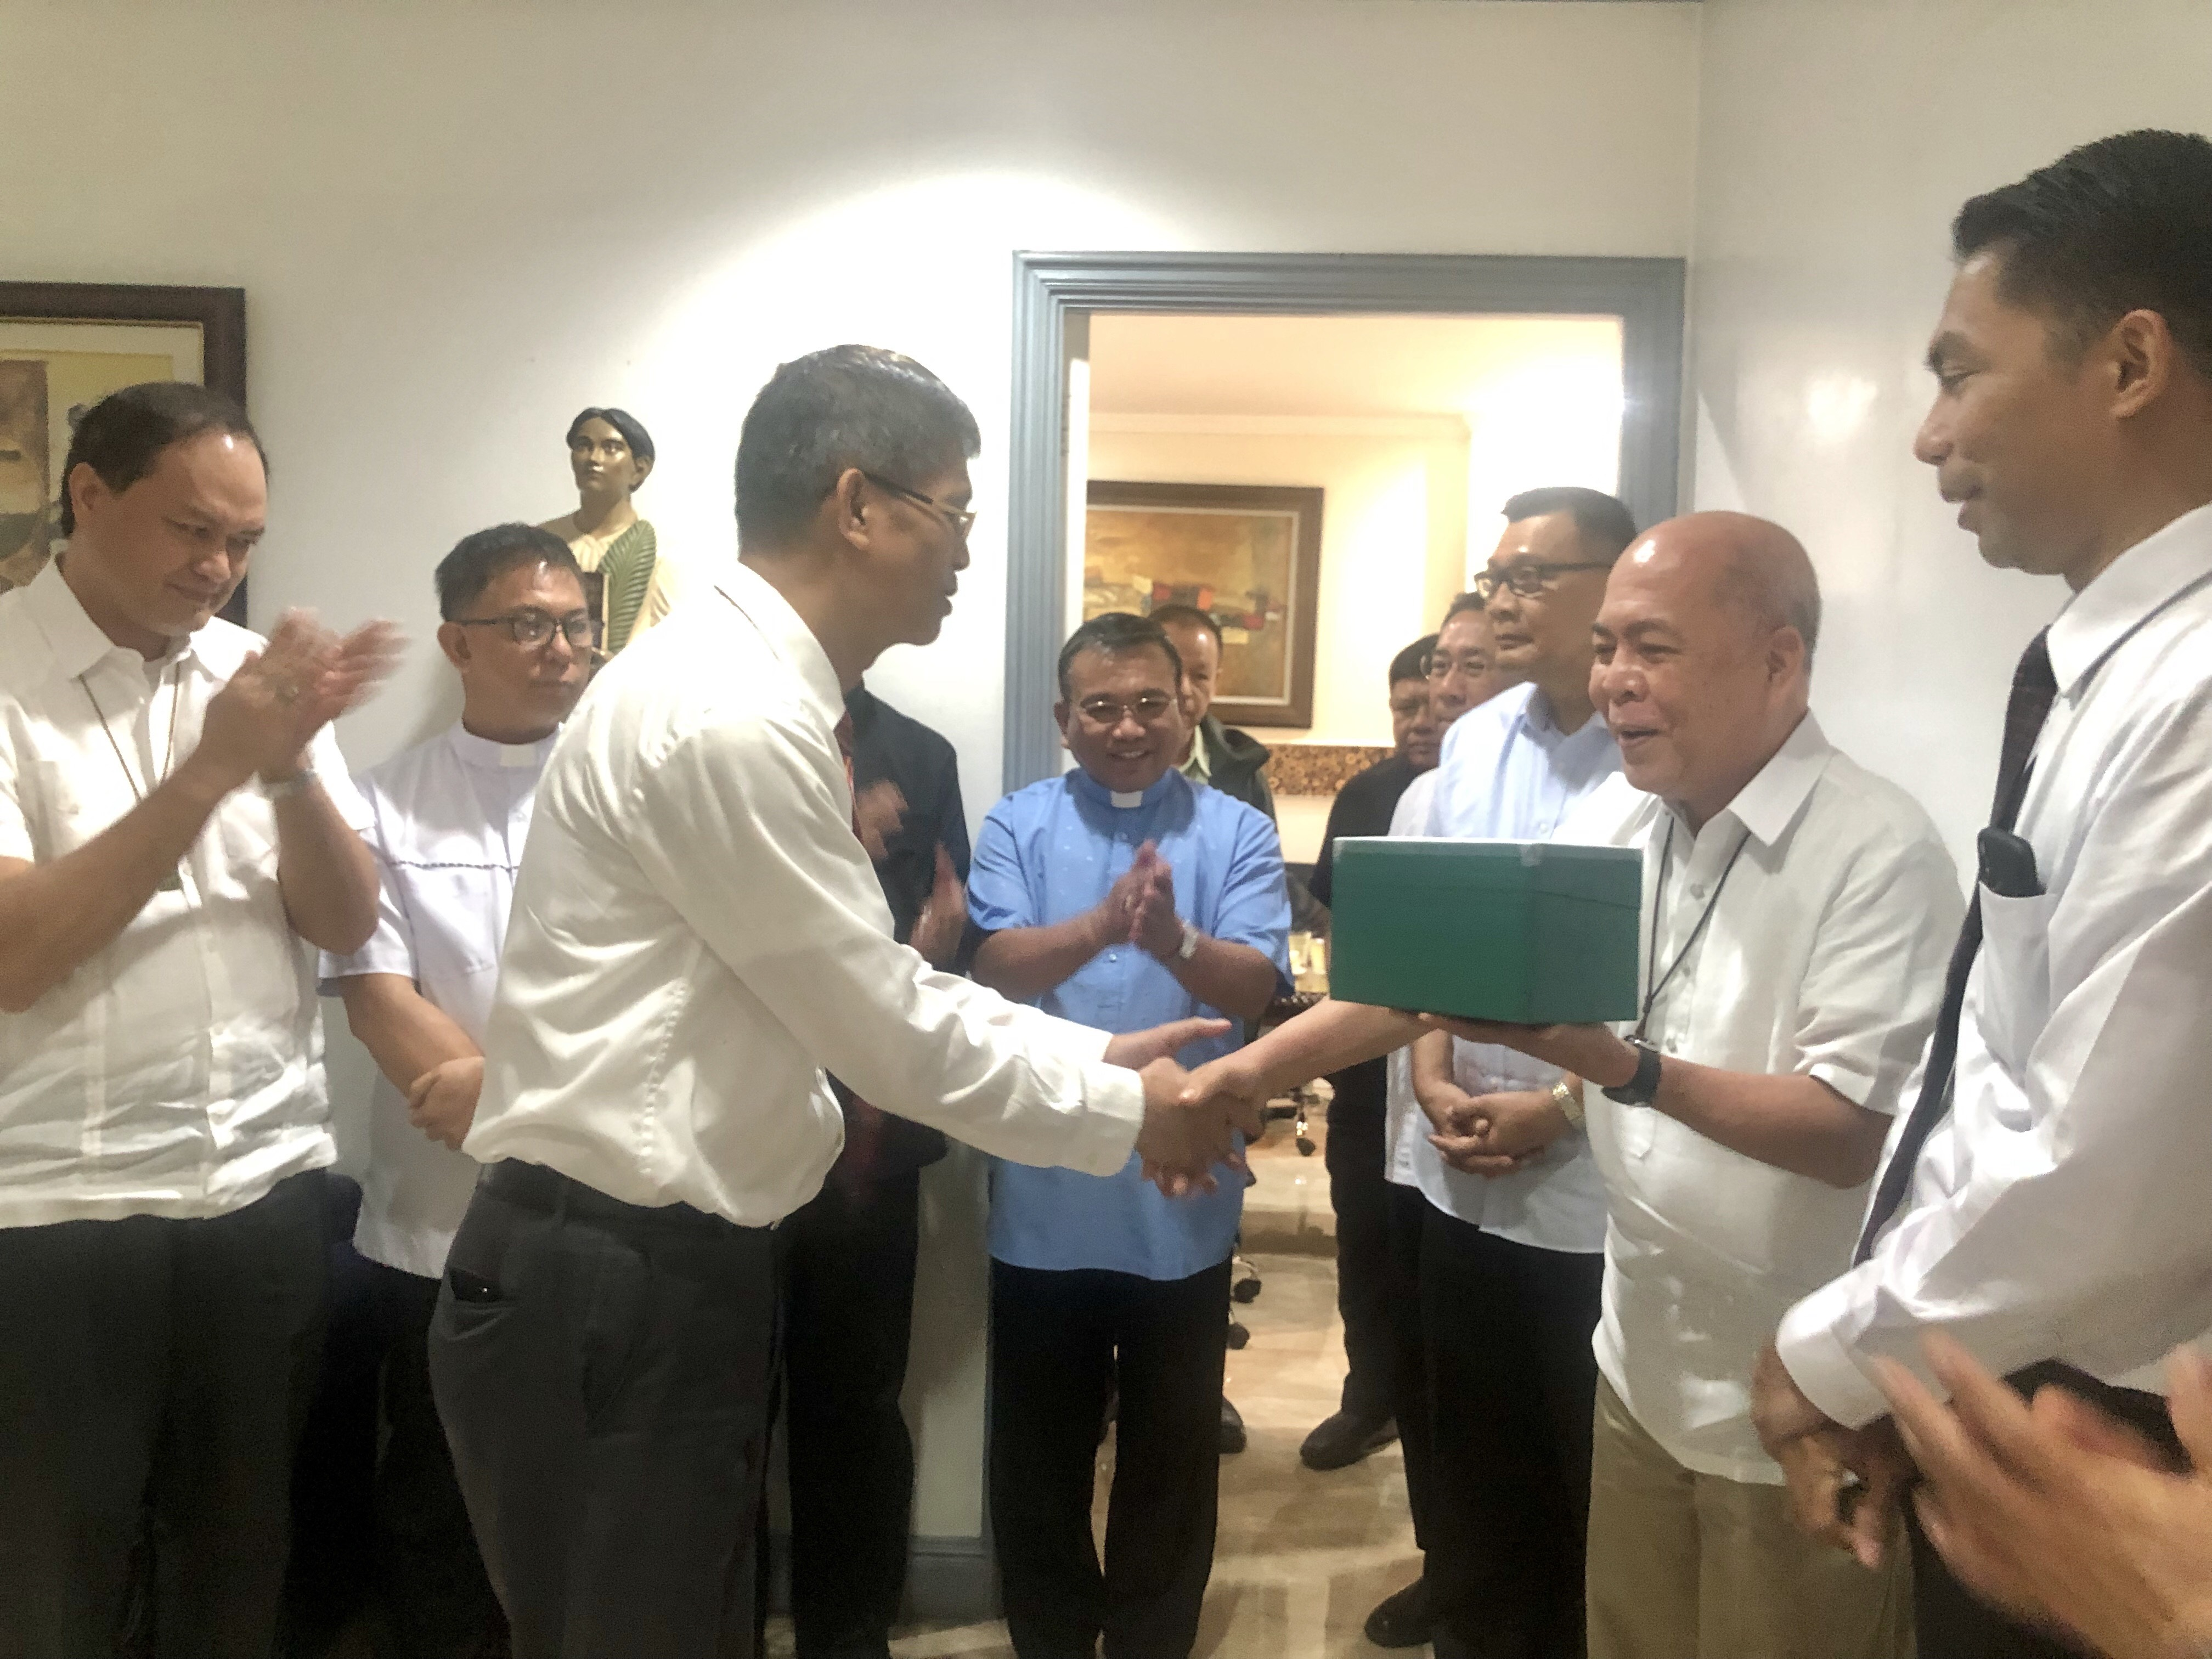 Elder Aretemio Maligon, Area Seventy, shakes the hand of Archbishop Romulo Valles, president of the Catholic Bishops' Conference of the Philippines (CBCP). Felvir Ordinario (extreme right), Family History manager, and other Catholic archbishops look on during the handover of the digitized records on Sept. 18 at CBCP headquarters.